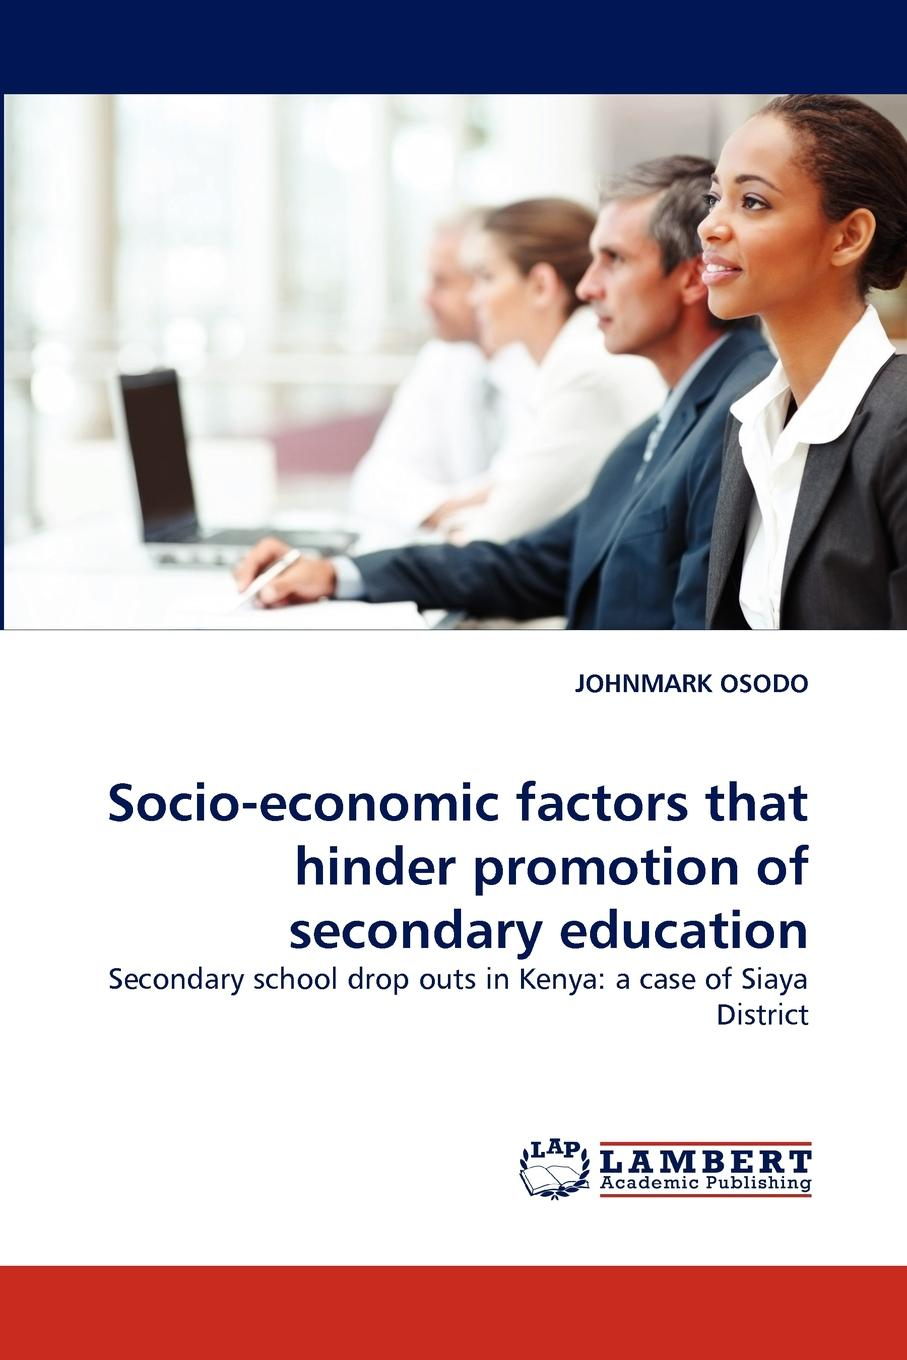 Johnmark Osodo Socio-Economic Factors That Hinder Promotion of Secondary Education economic and political impacts of business improvement district